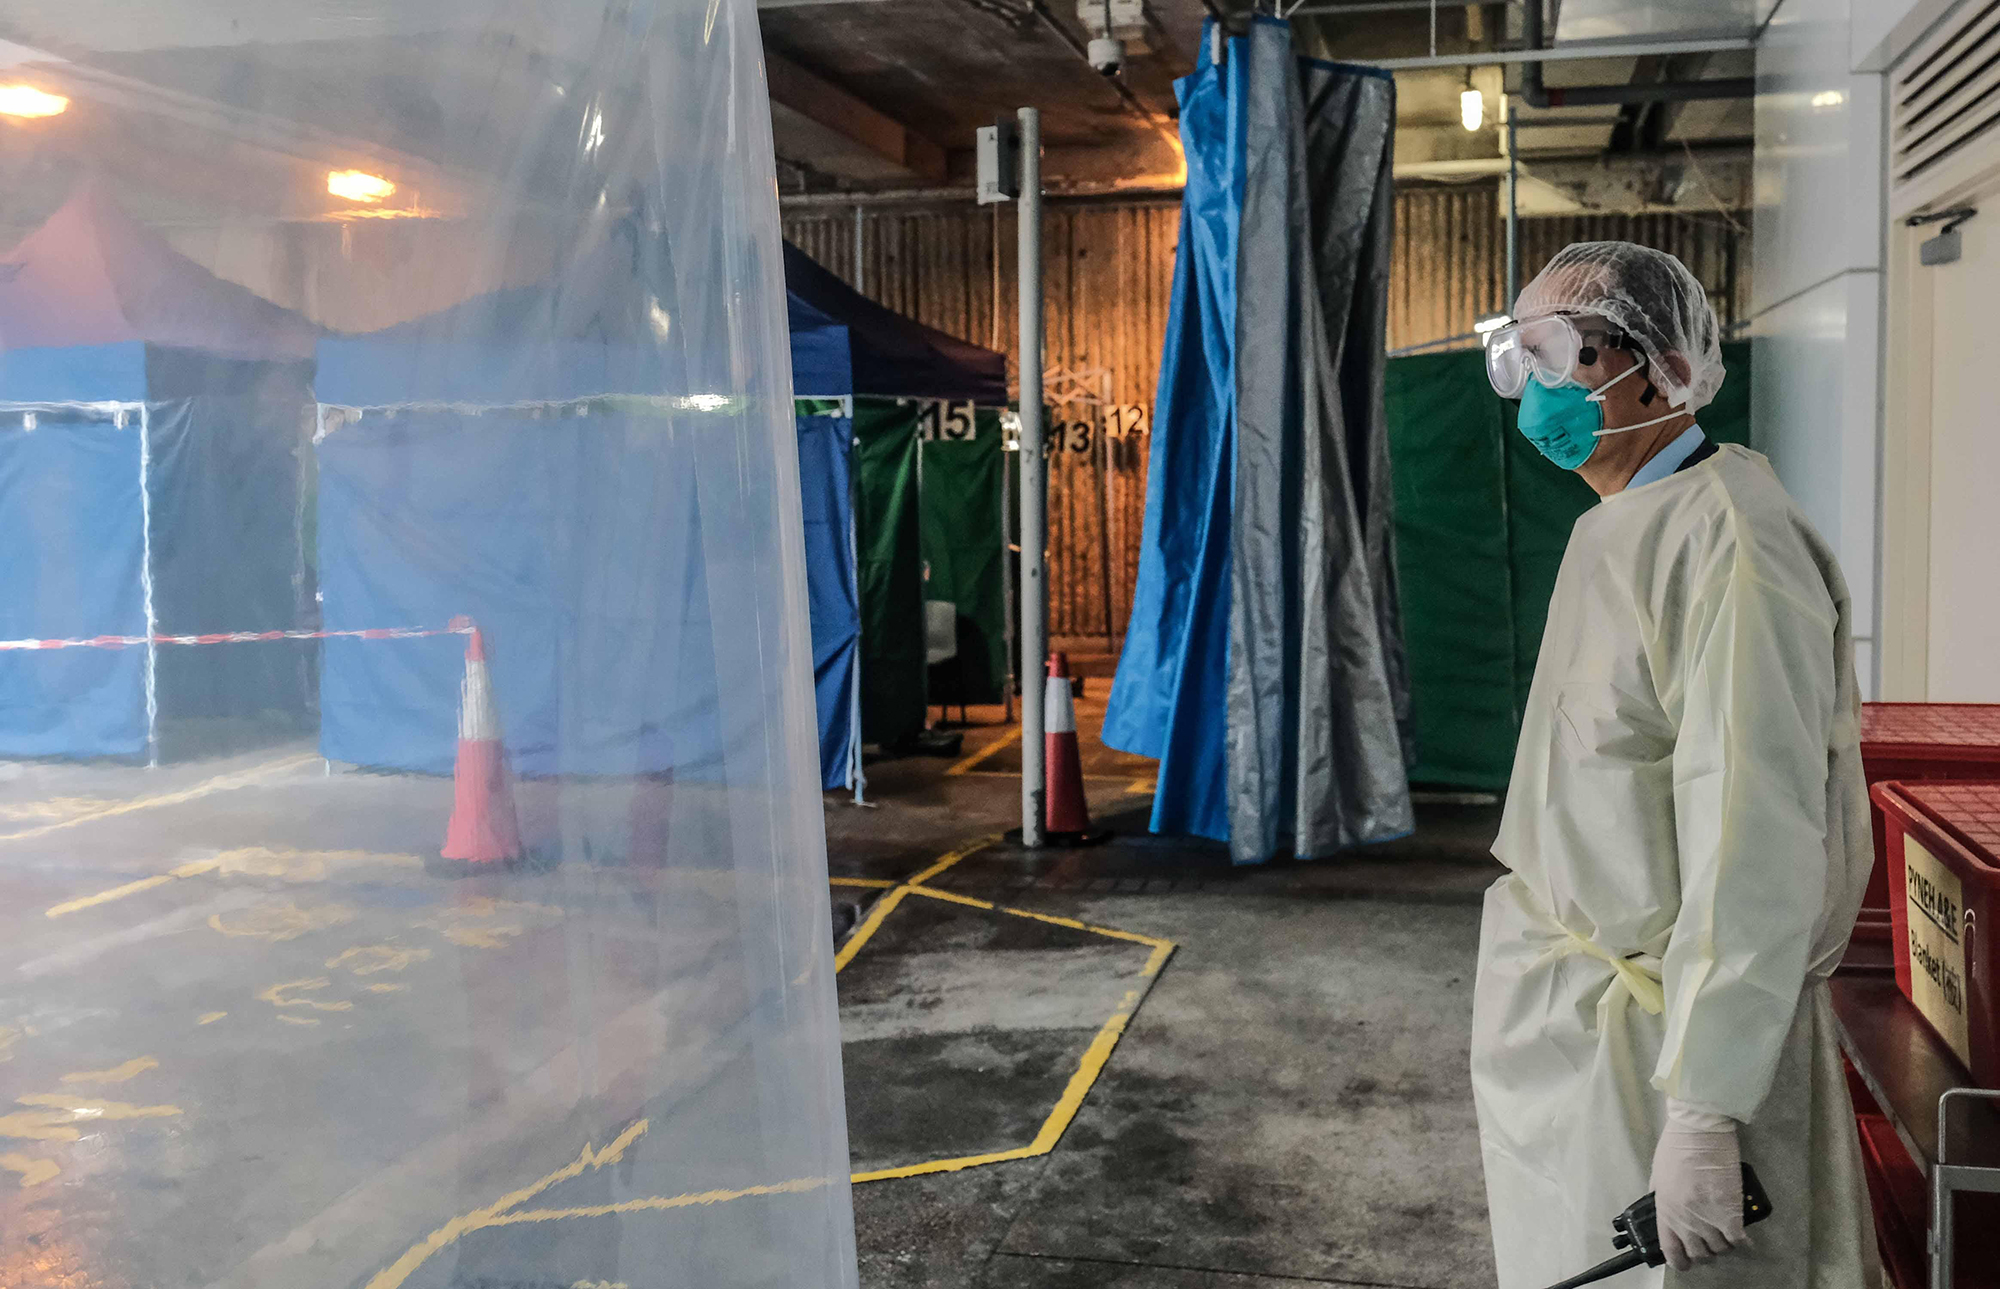 A medical worker stands at a site for Covid-19 tests in Pamela Youde Nethersole Eastern Hospital on March 31 in Hong Kong.